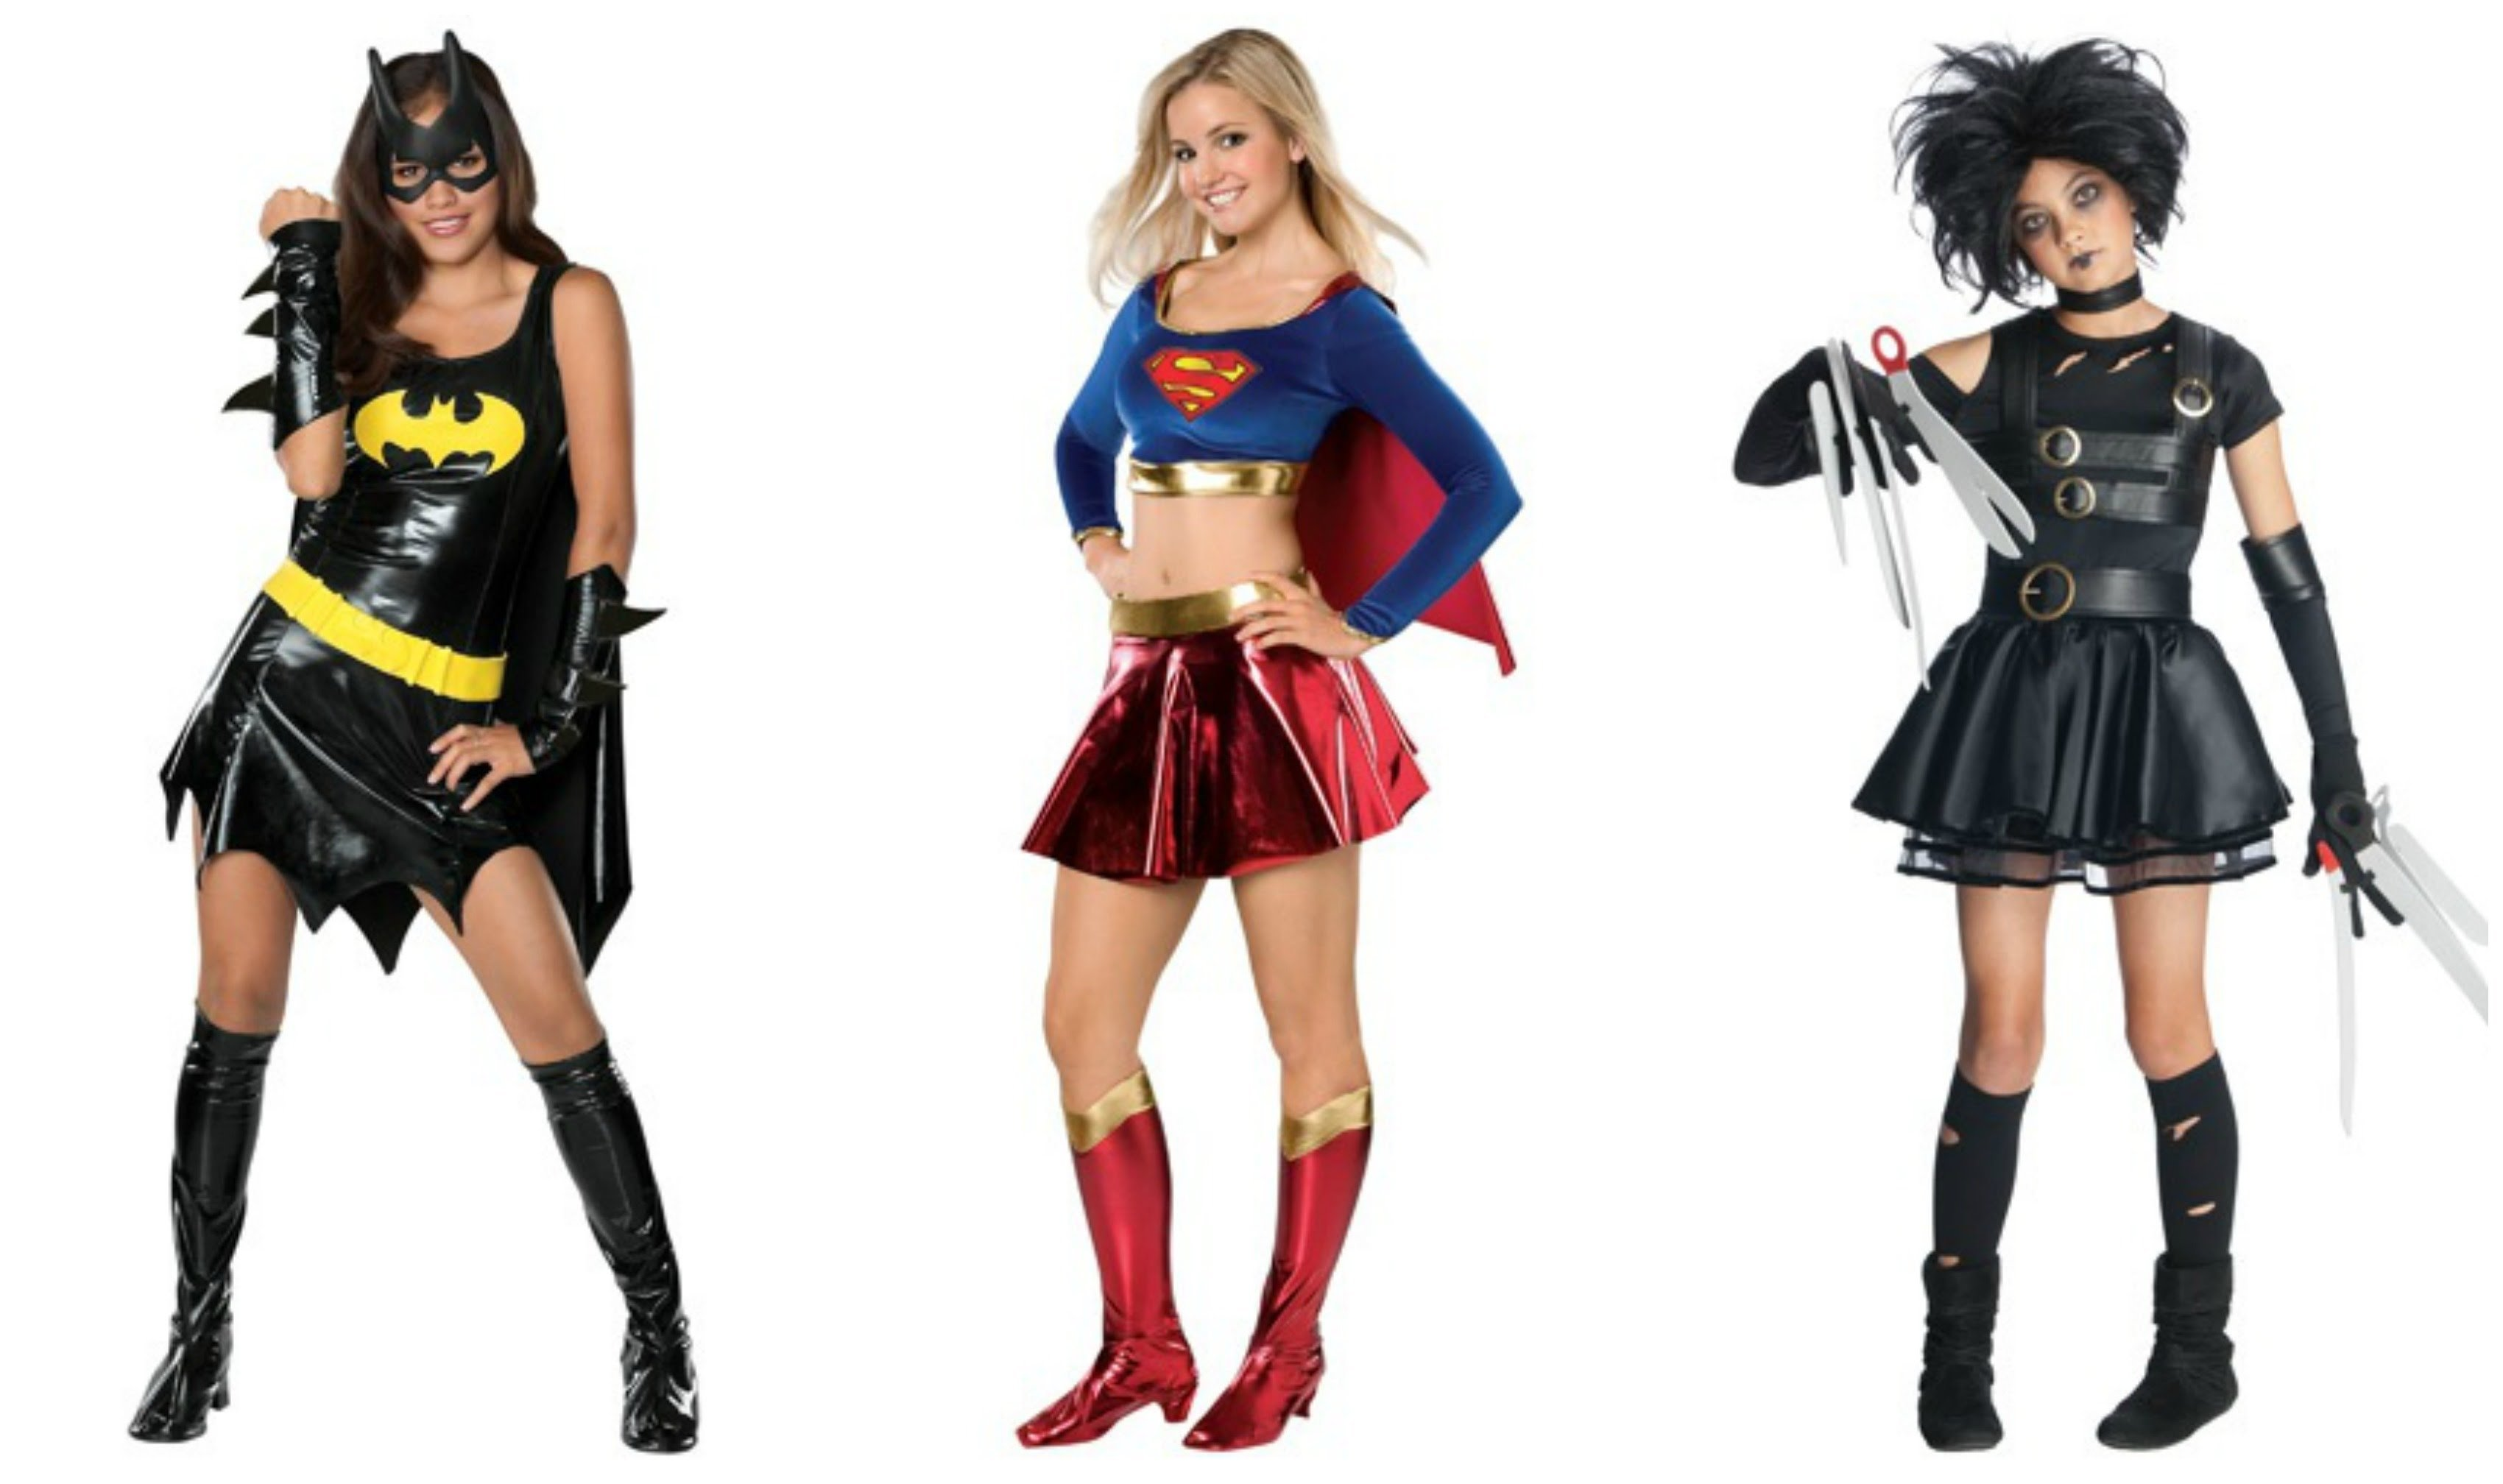 10 beautiful cute costume ideas for girls halloween costume ideas for teens girls youtube halloween costumes